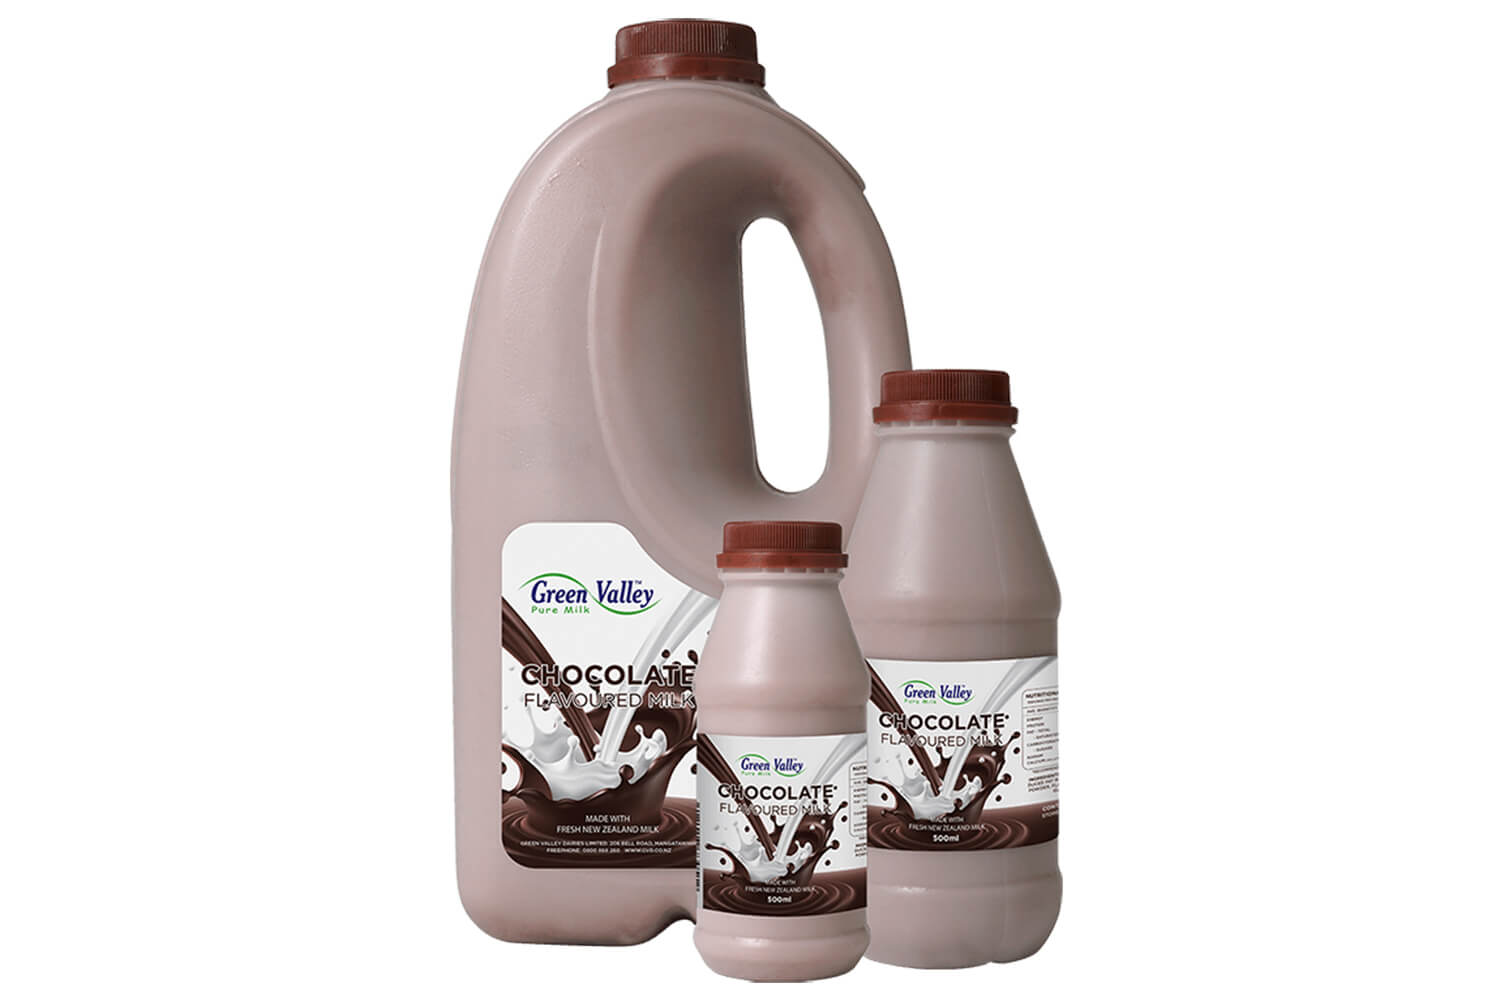 We've launched a new look label for our chocolate flavoured milk